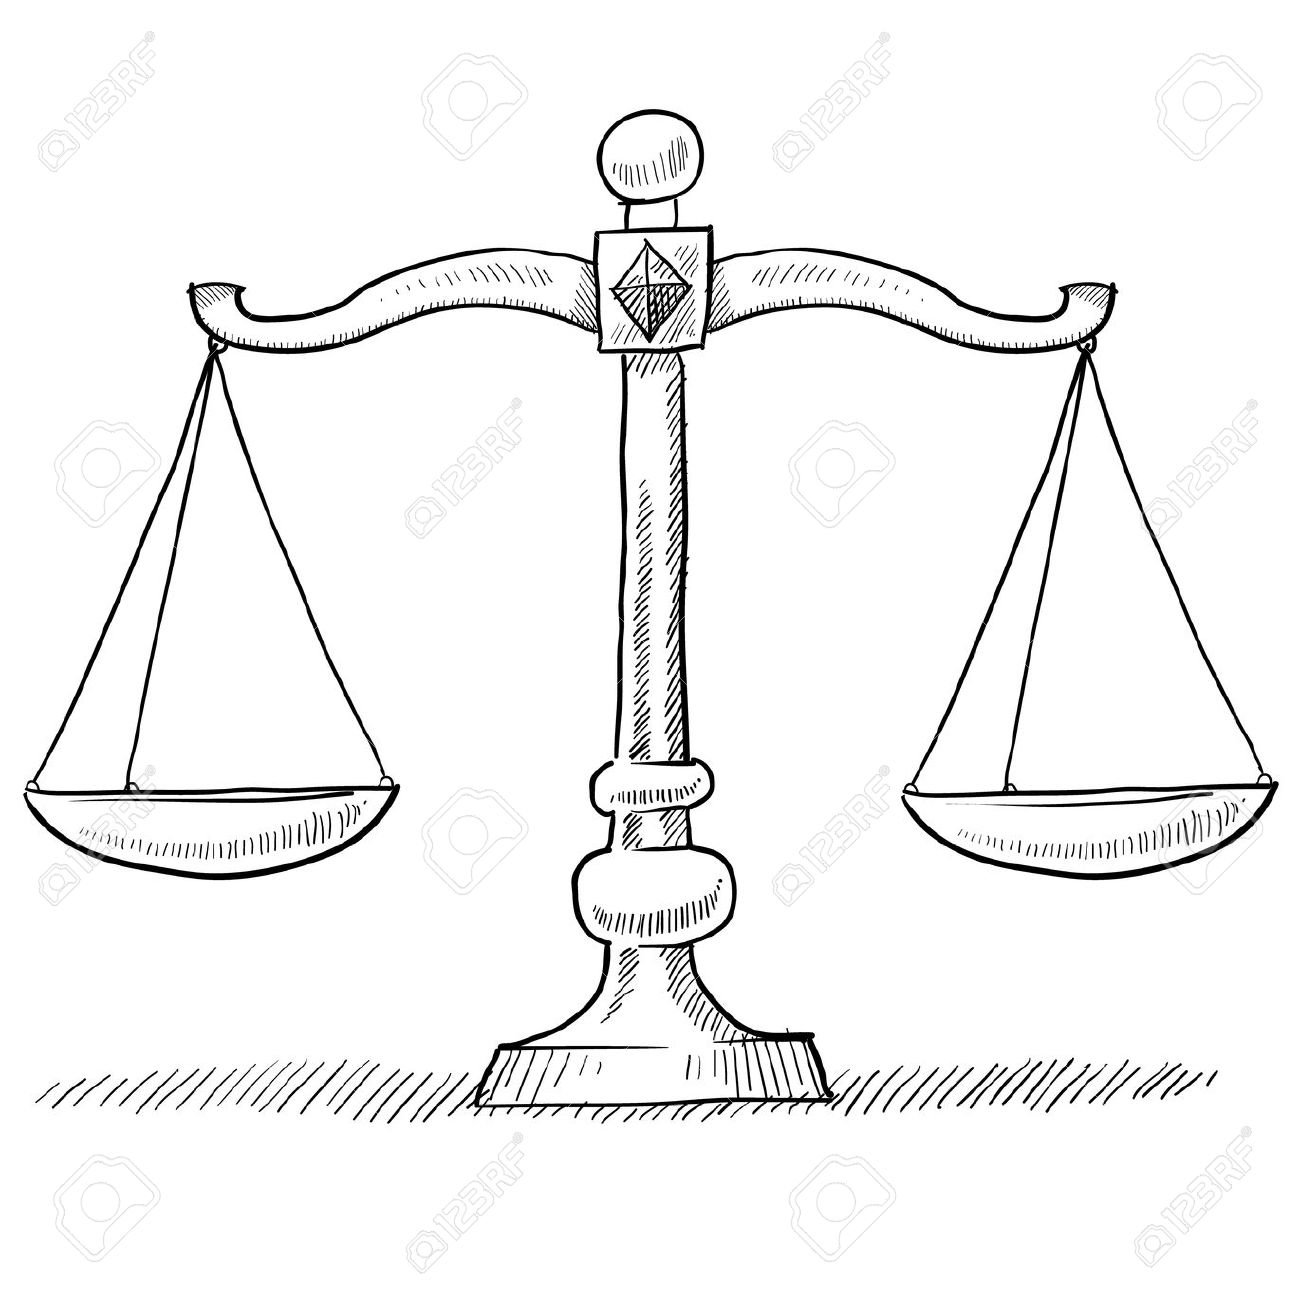 Doodle style scales of justice vector illustration Stock Photo - 11575046